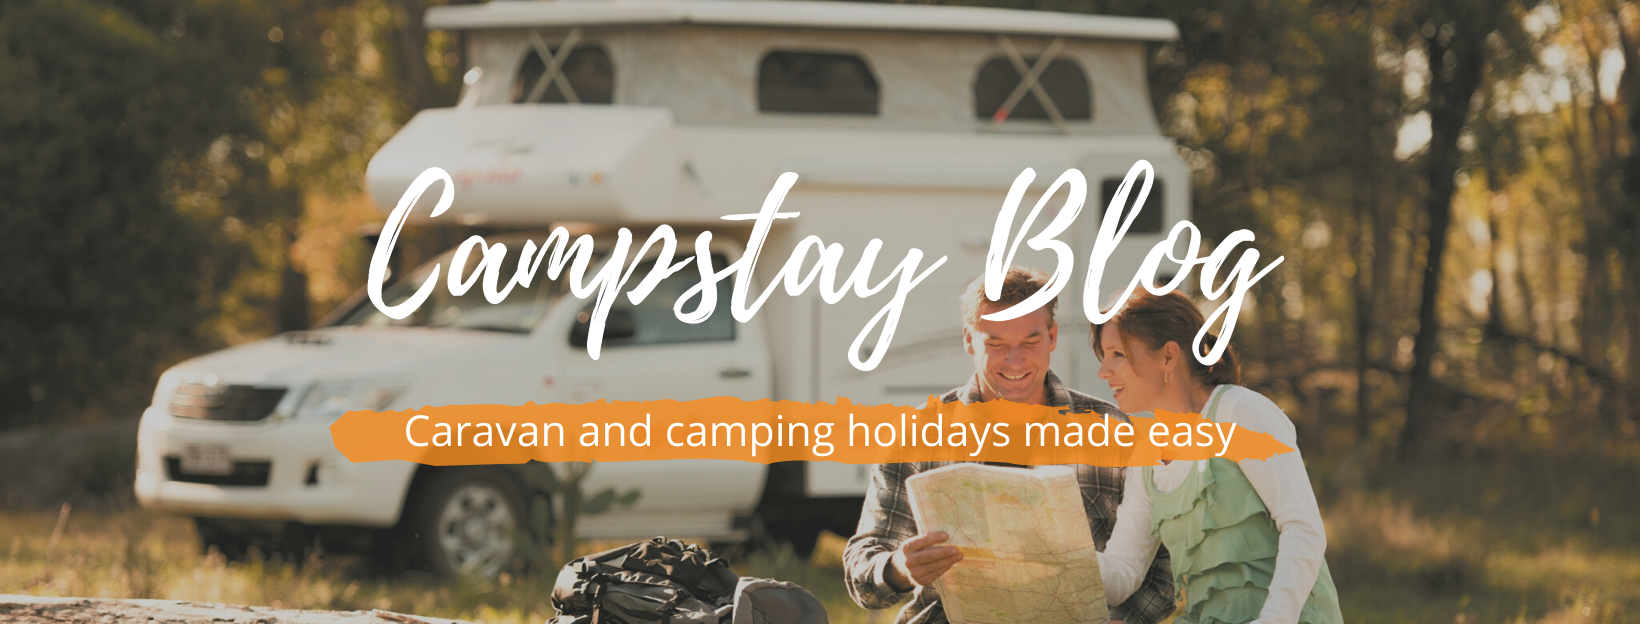 Campstay Blog